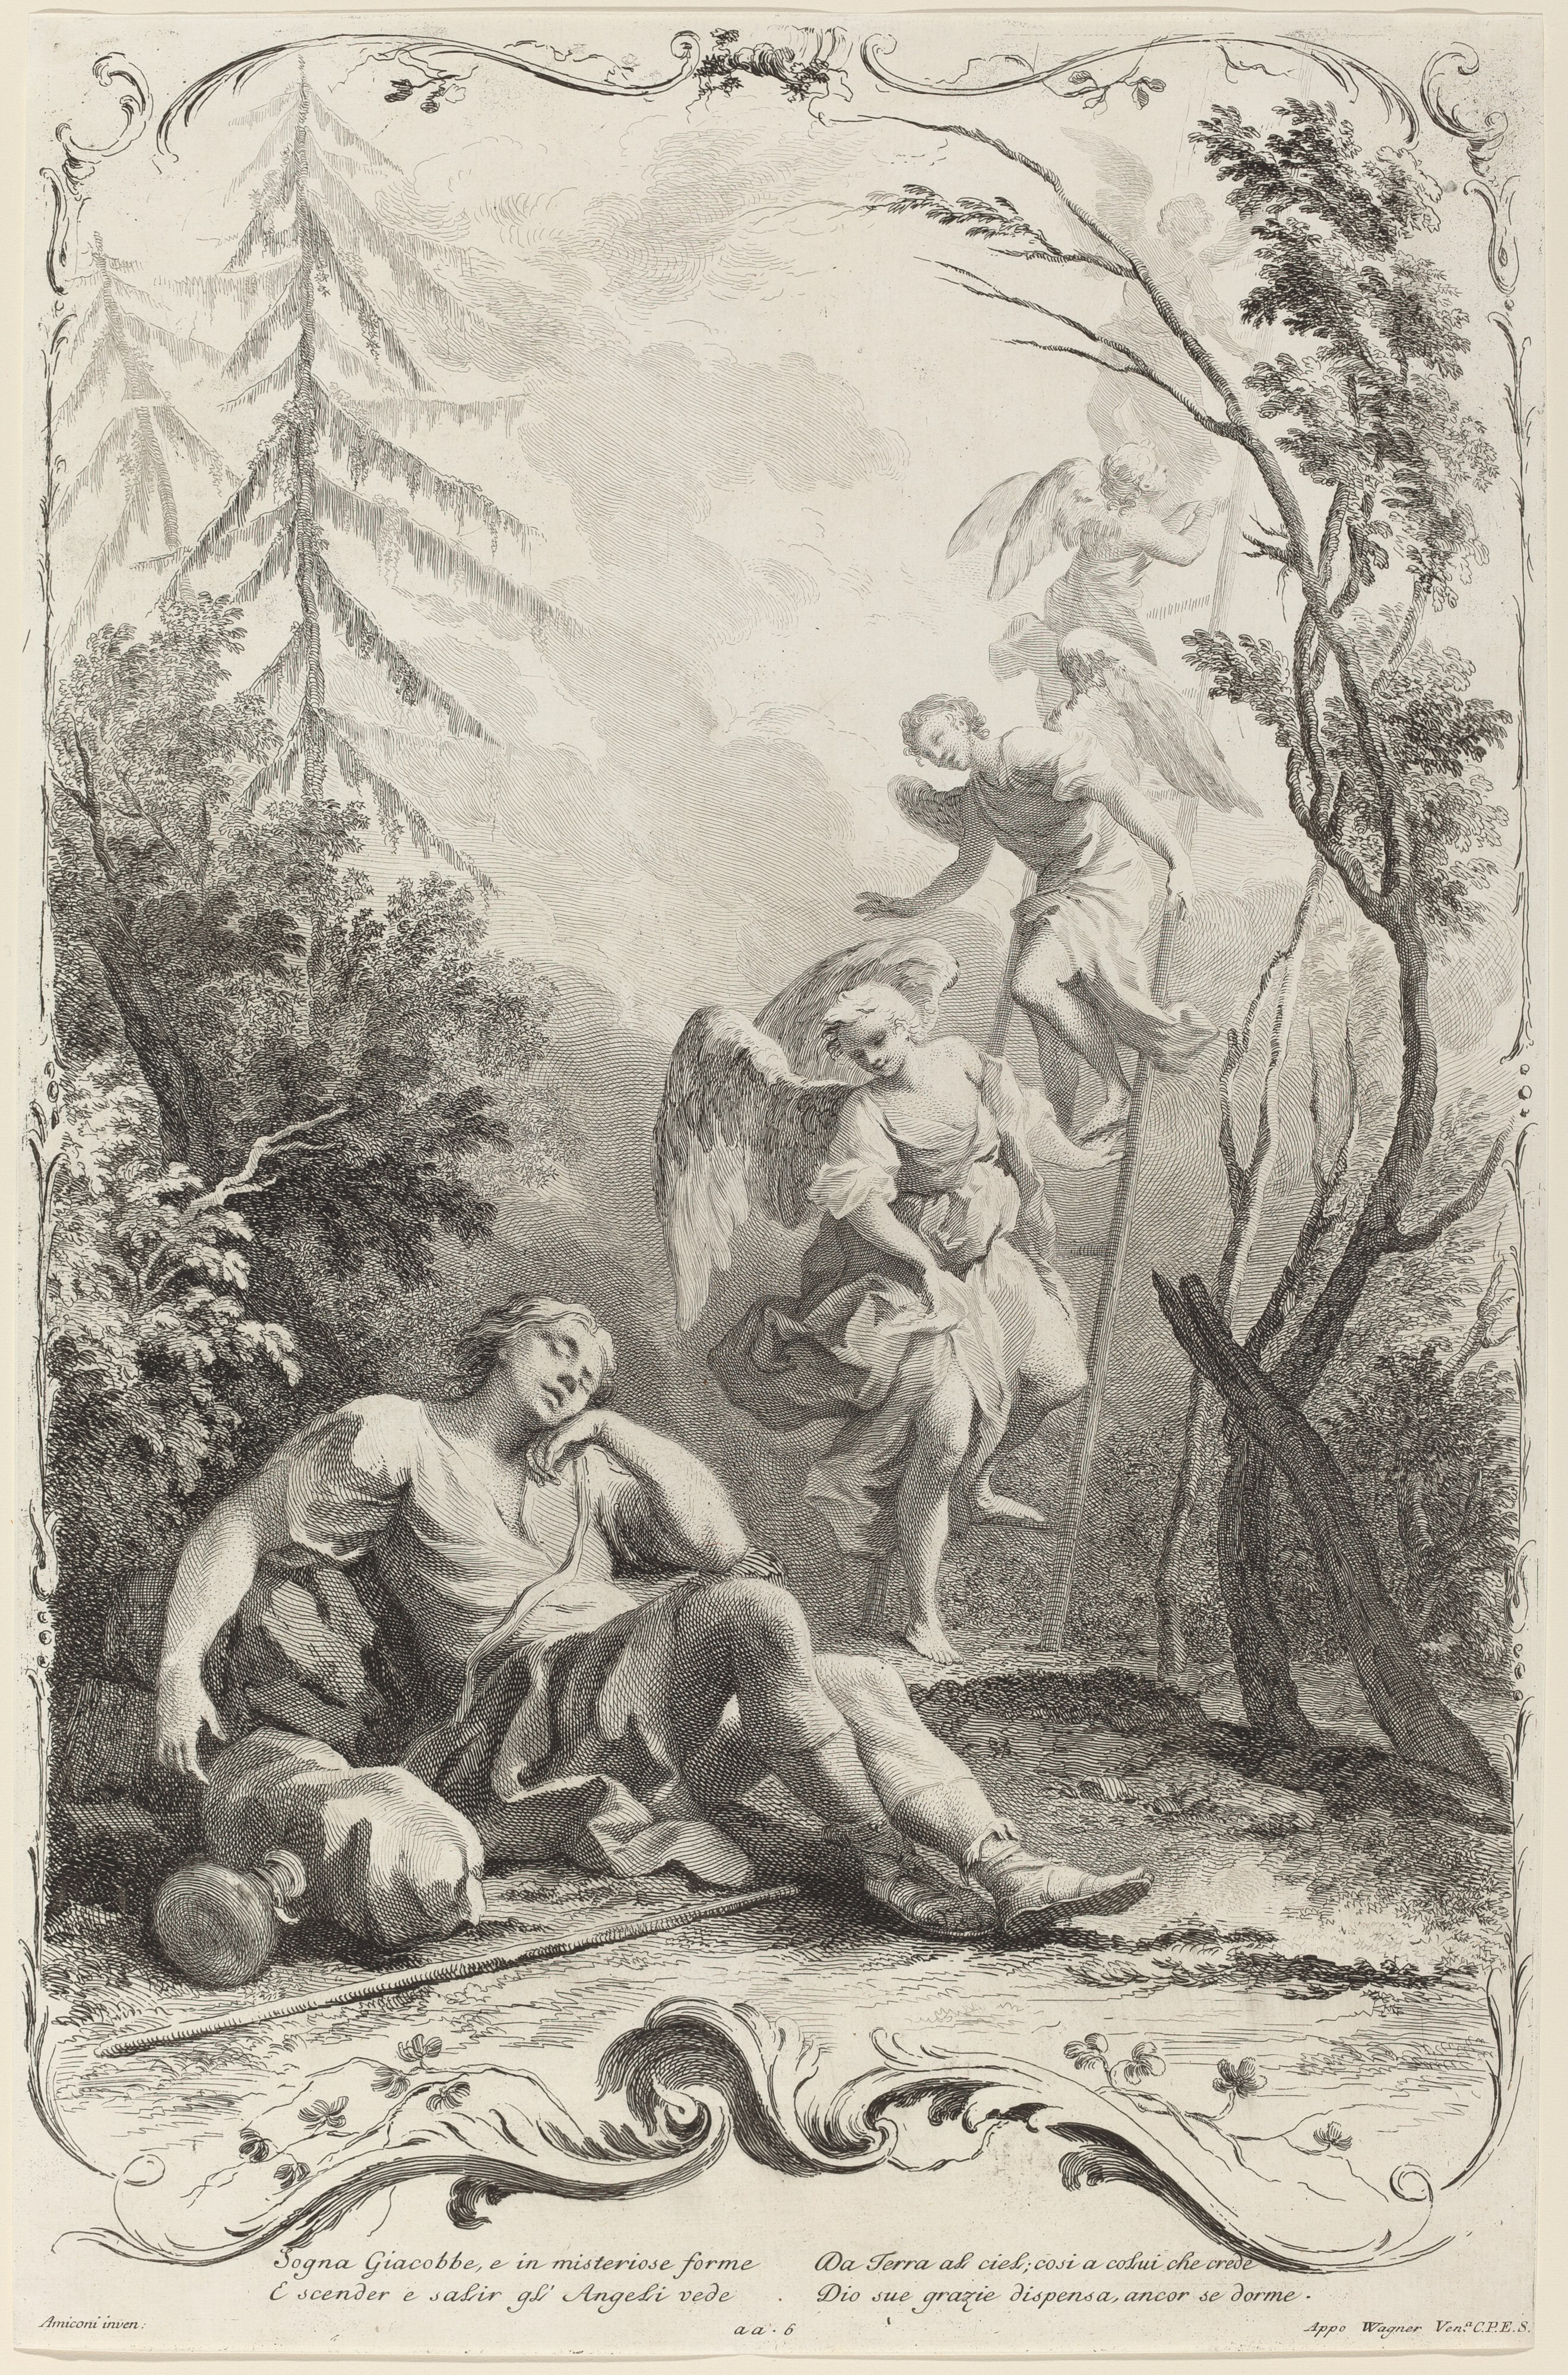 Jacob's Ladder, c. 1745, by Joseph Wagner (publisher) after Jacopo Amigoni